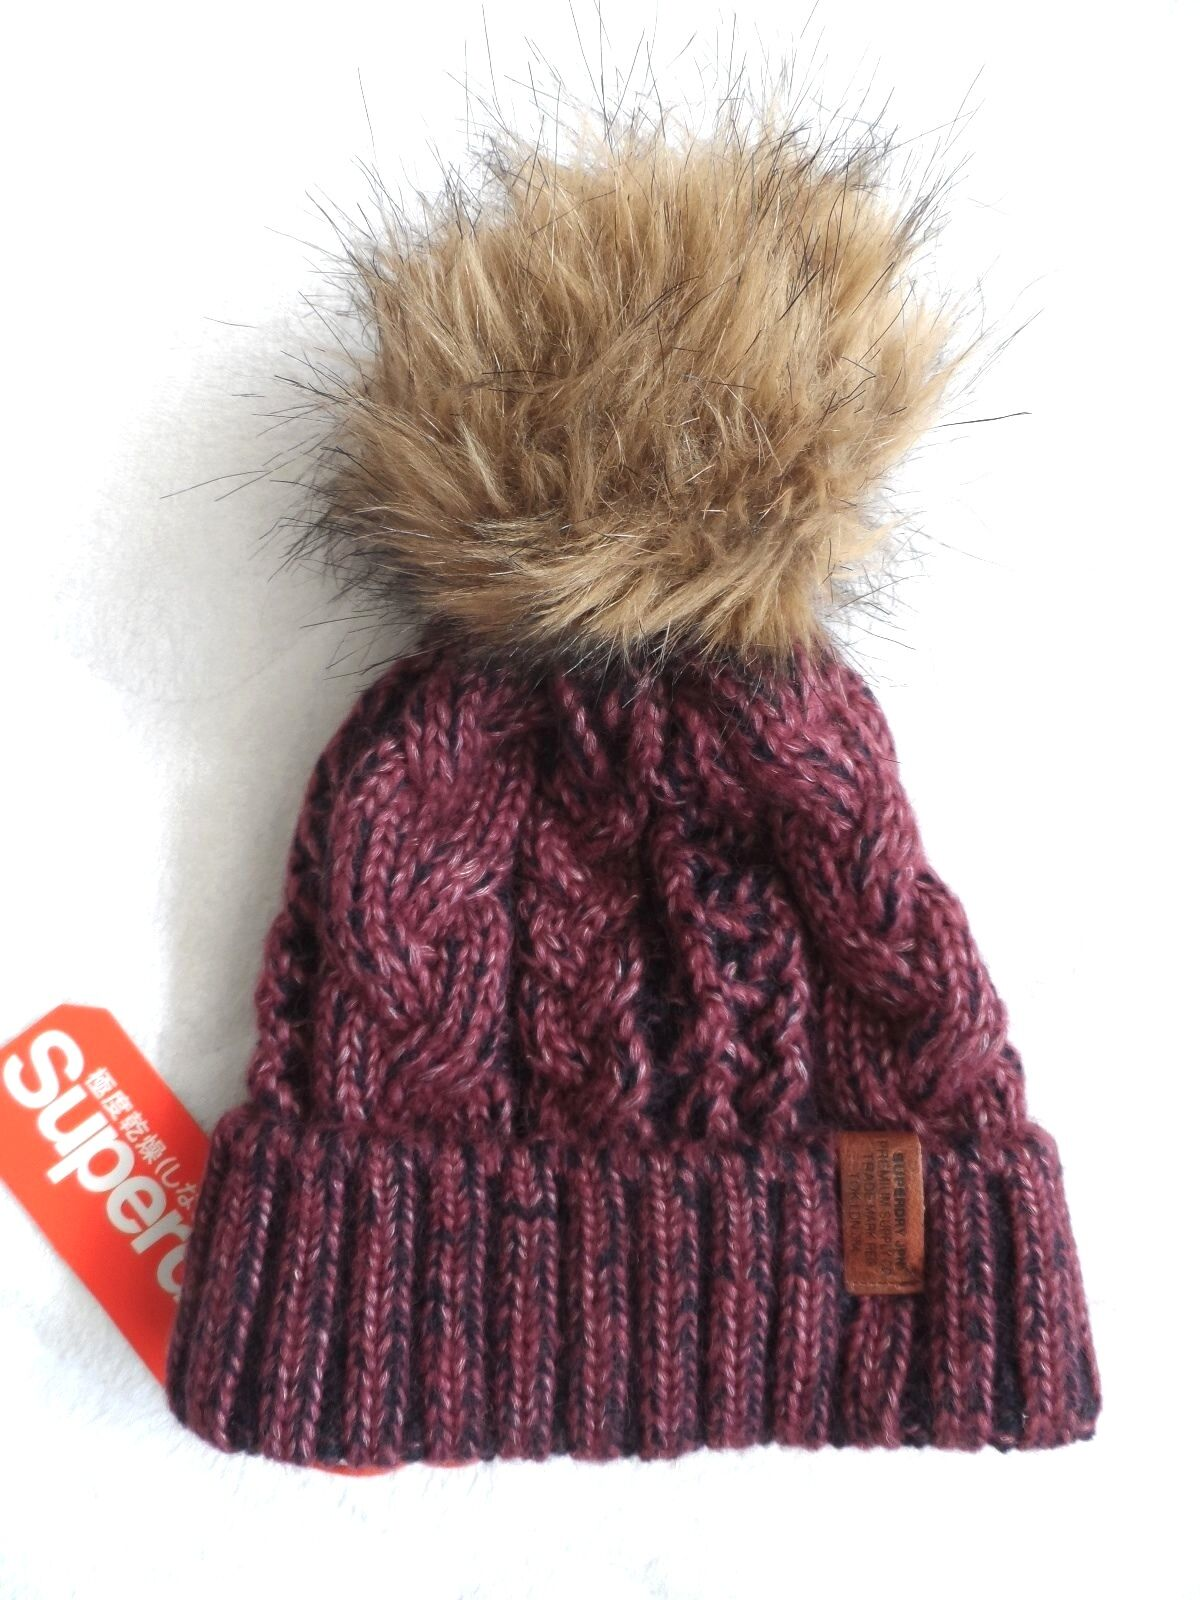 4f6337aa5 Womens Superdry Burgundy Navy Wool Cable Knit Bobble Hat Beanie Faux Fur  Pompom